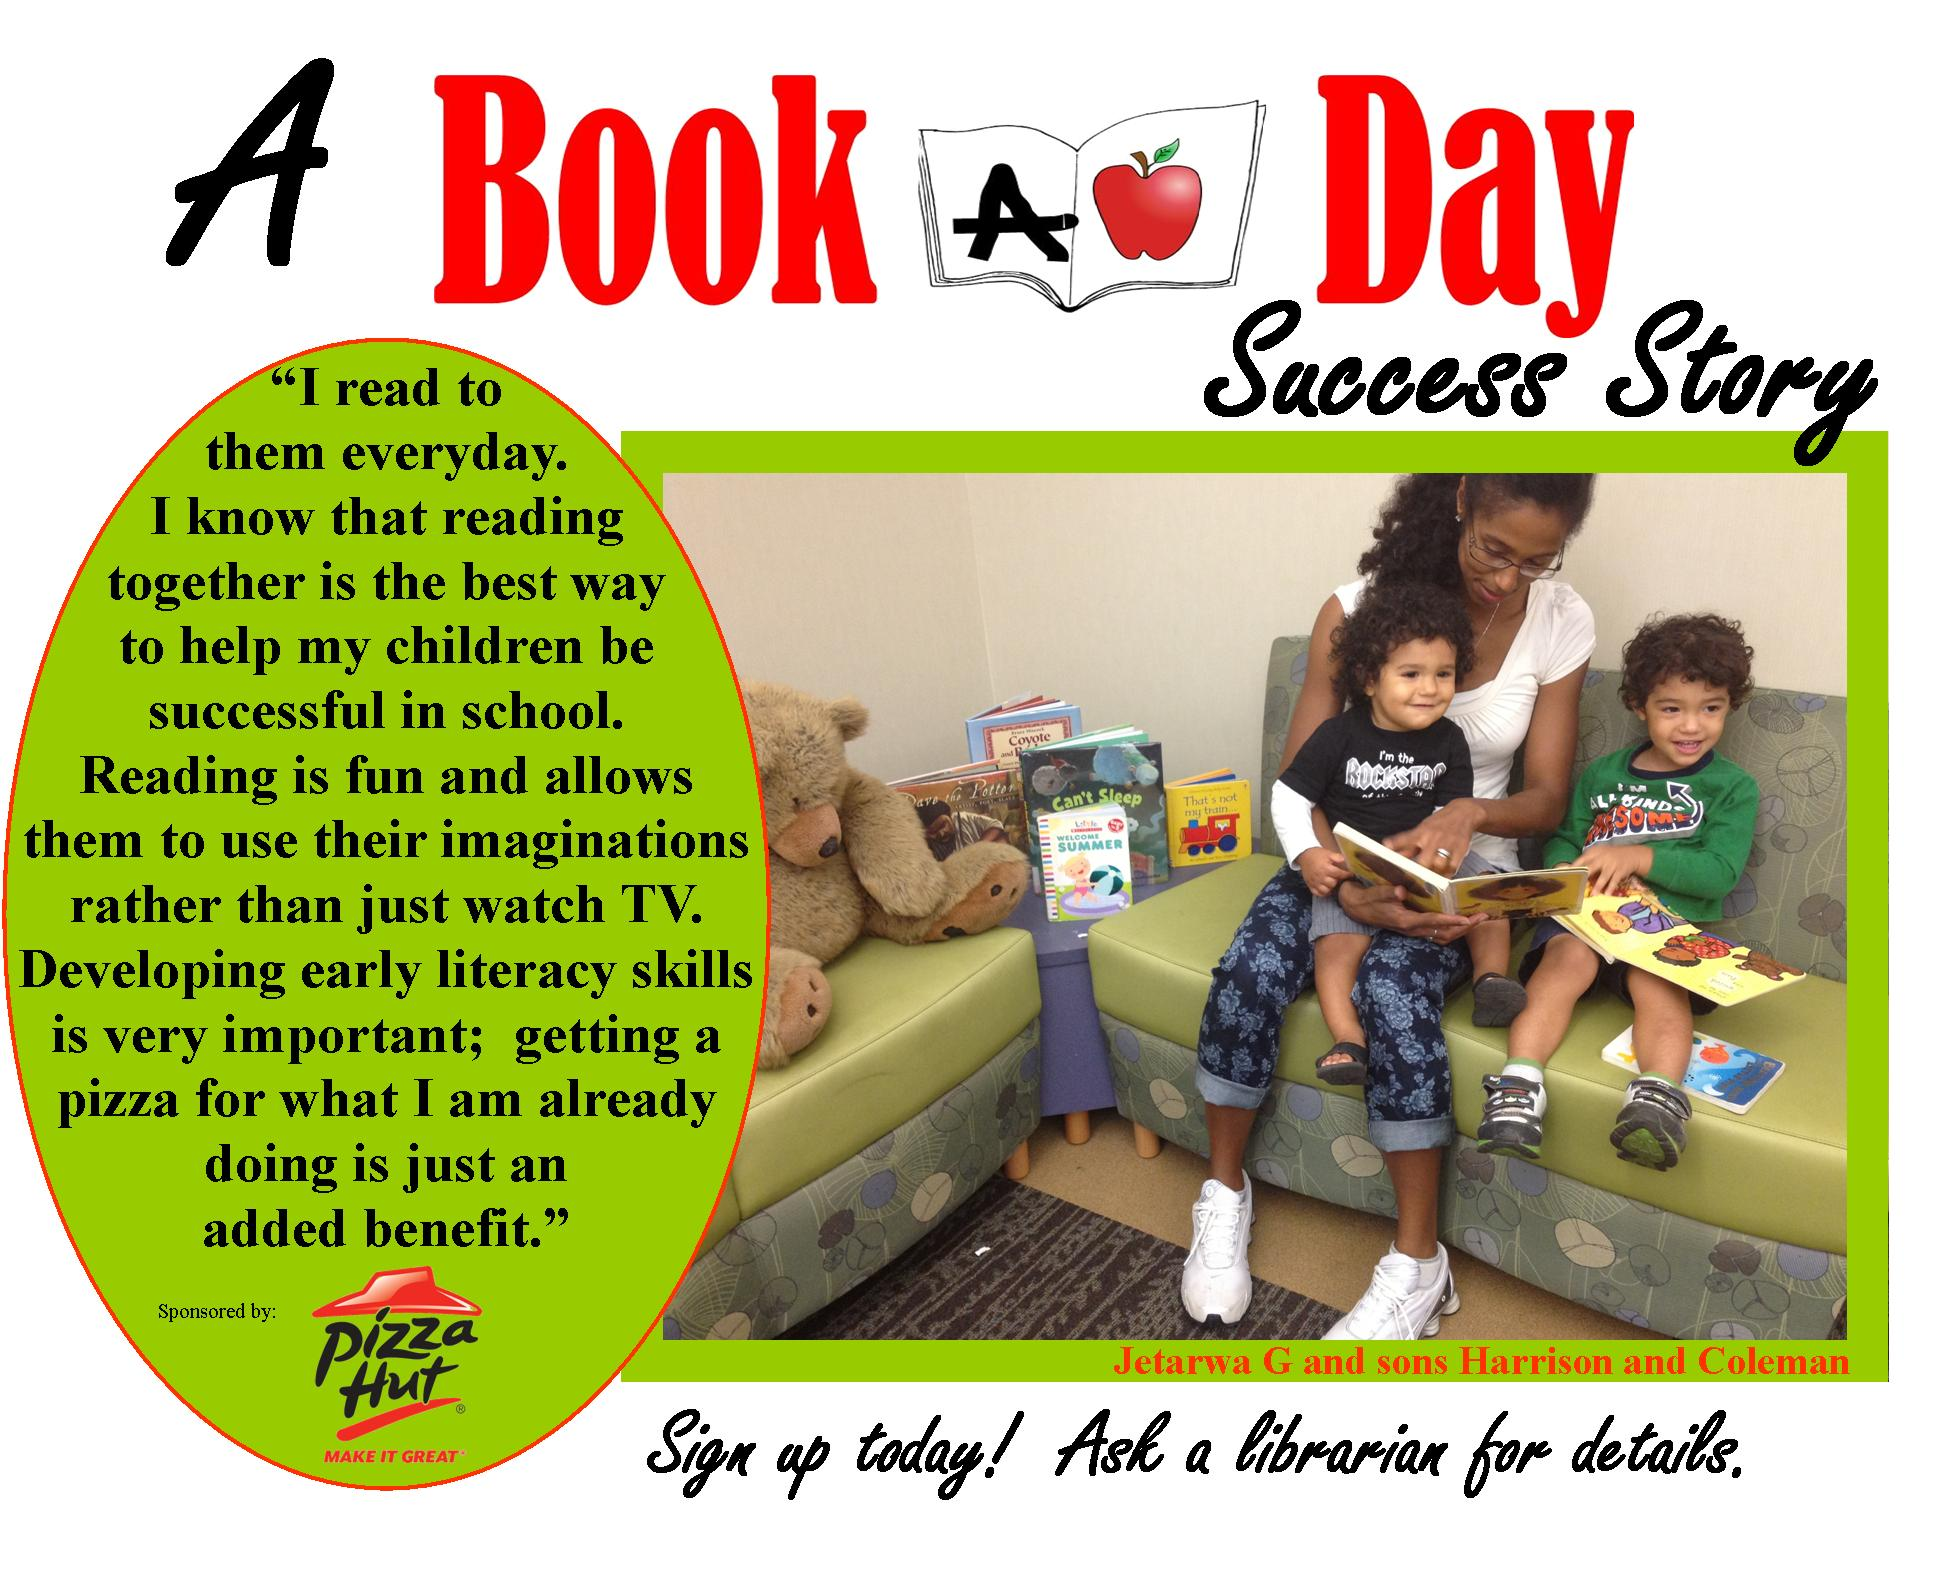 Book a Day Success Story